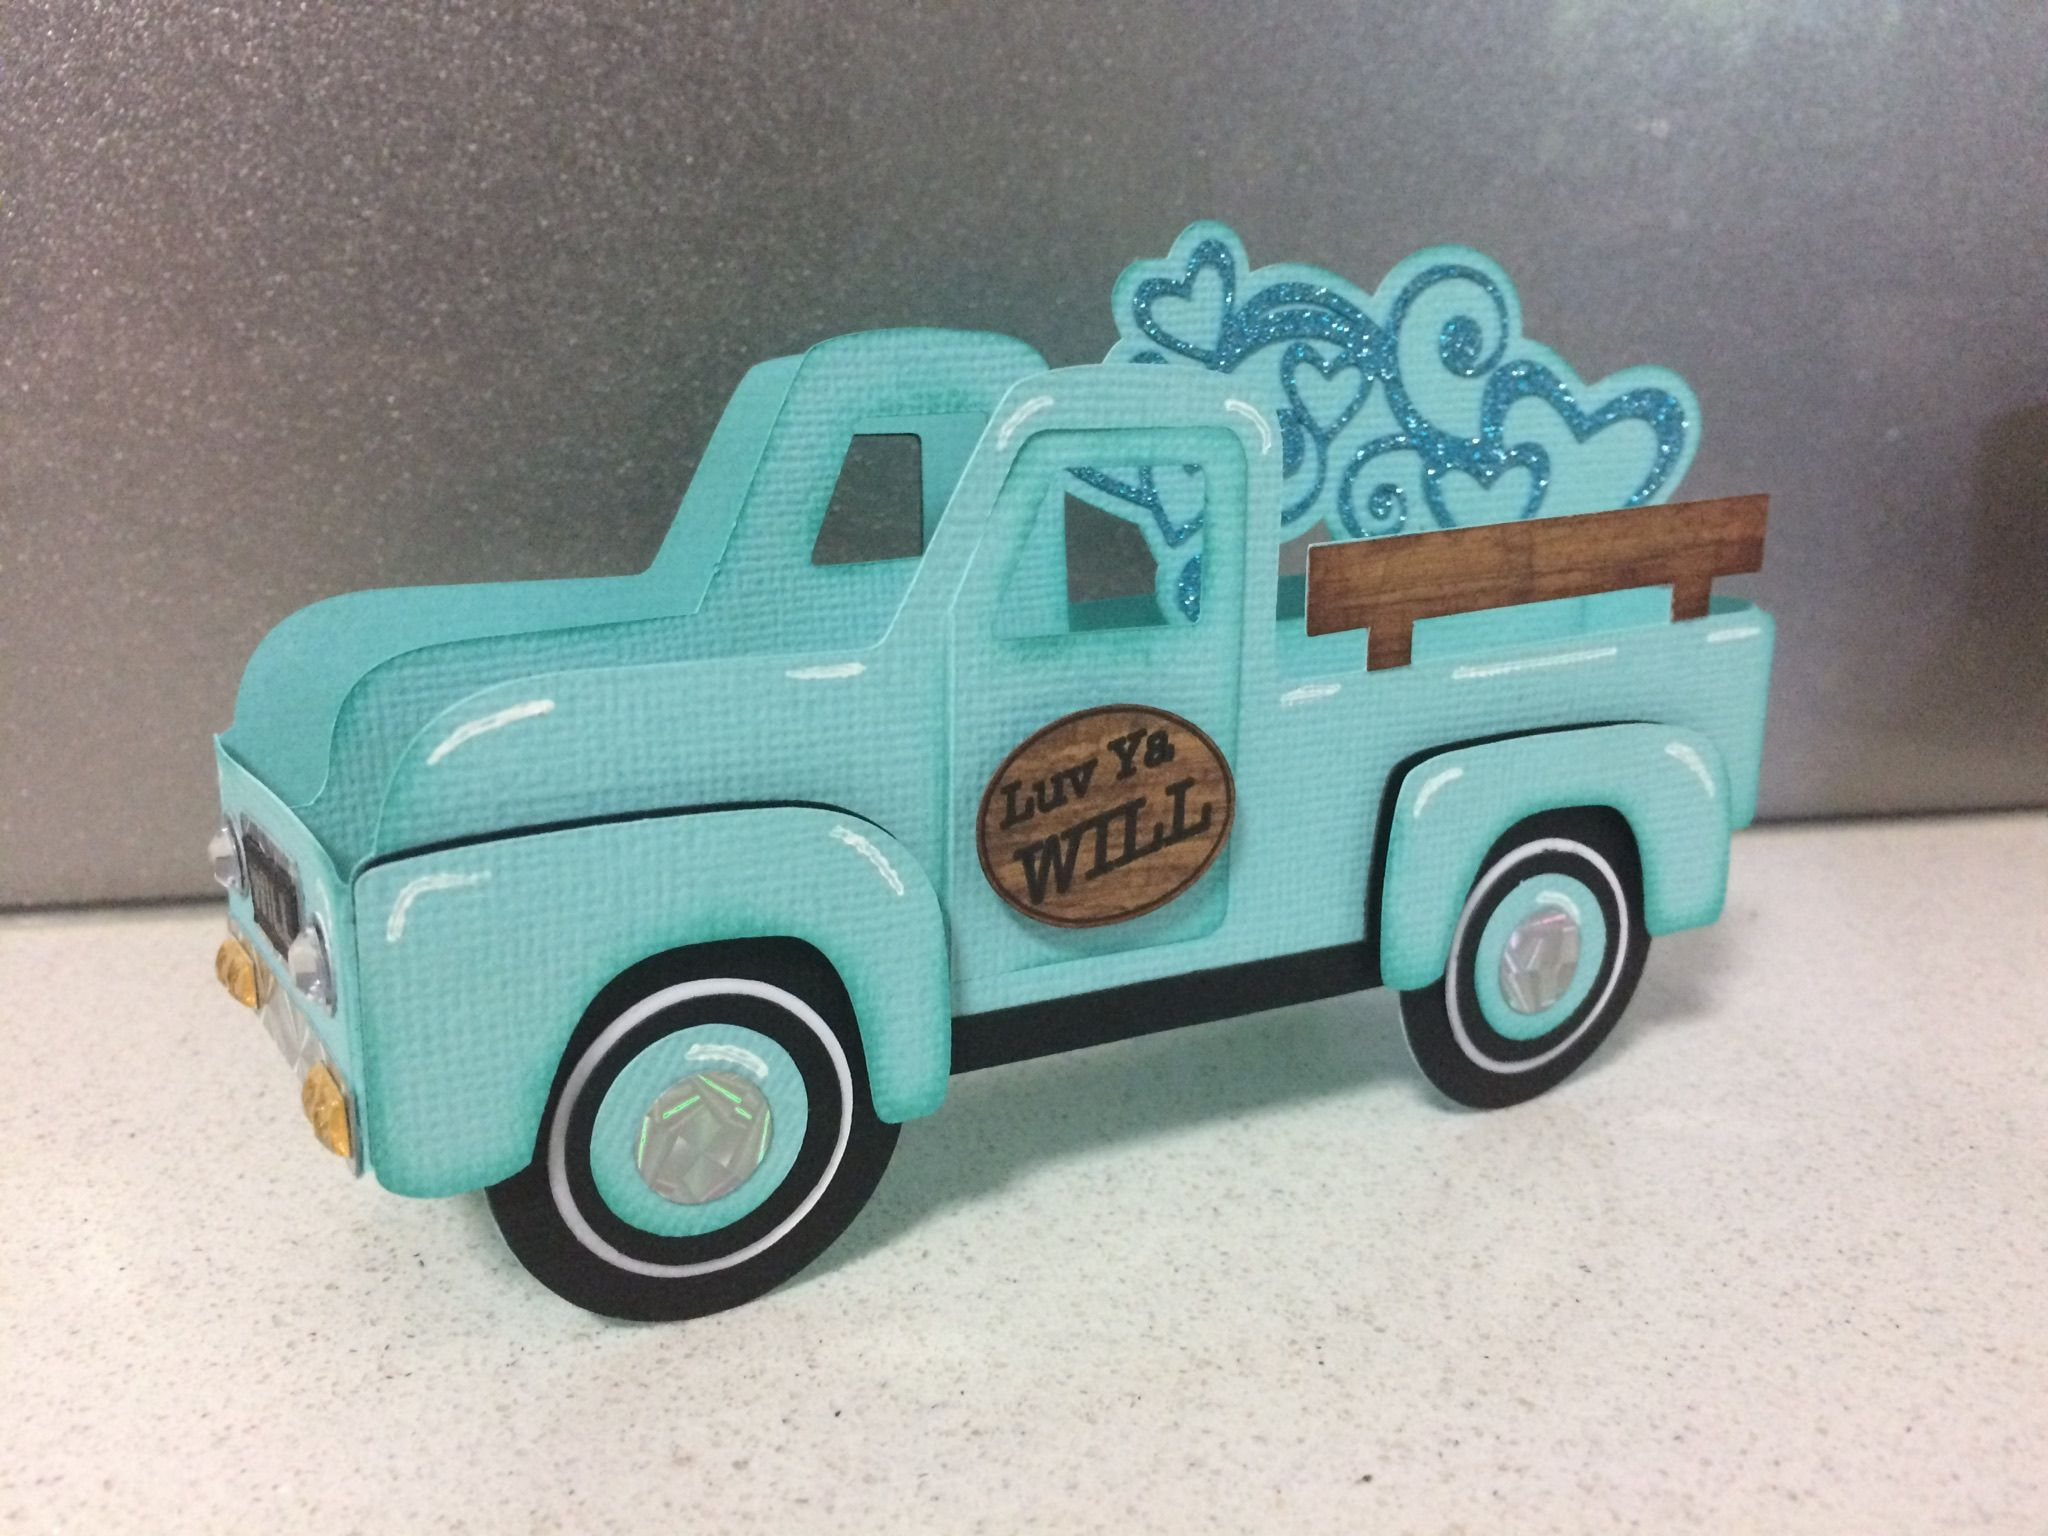 Vintage truck box card from svgcuts modified to be a